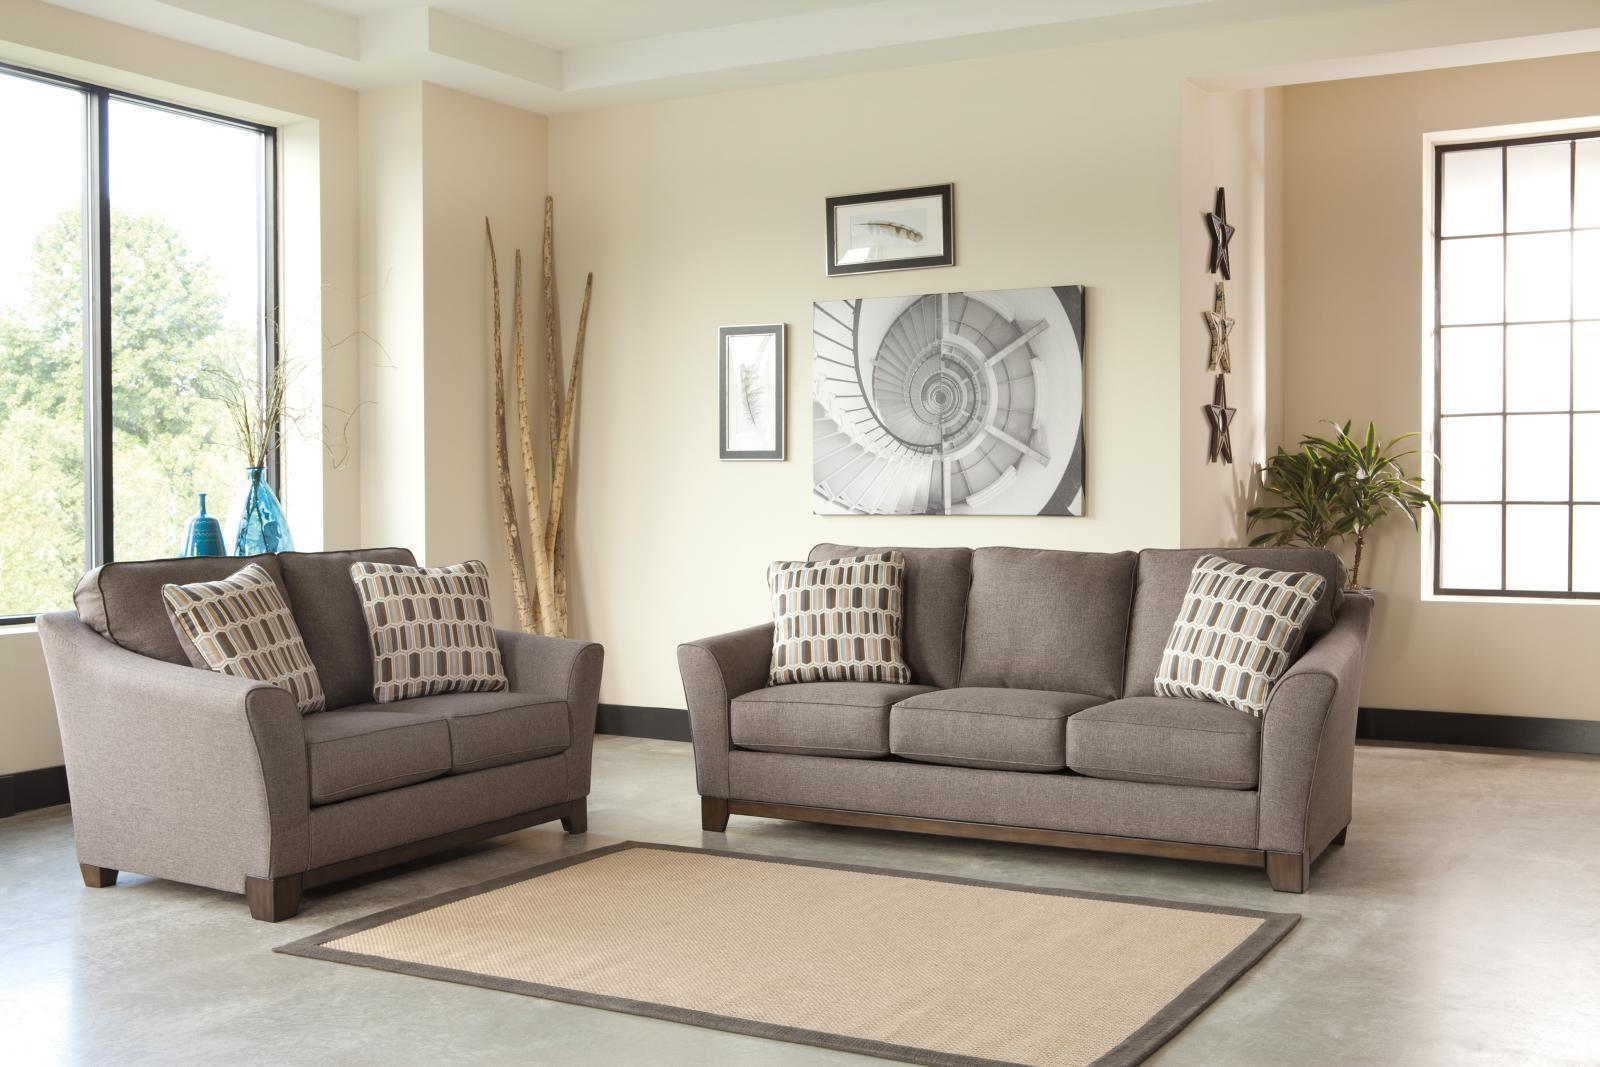 Ashley Janley Living Room Set 2pcs in Slate Upholstery Fabric Contemporary Style